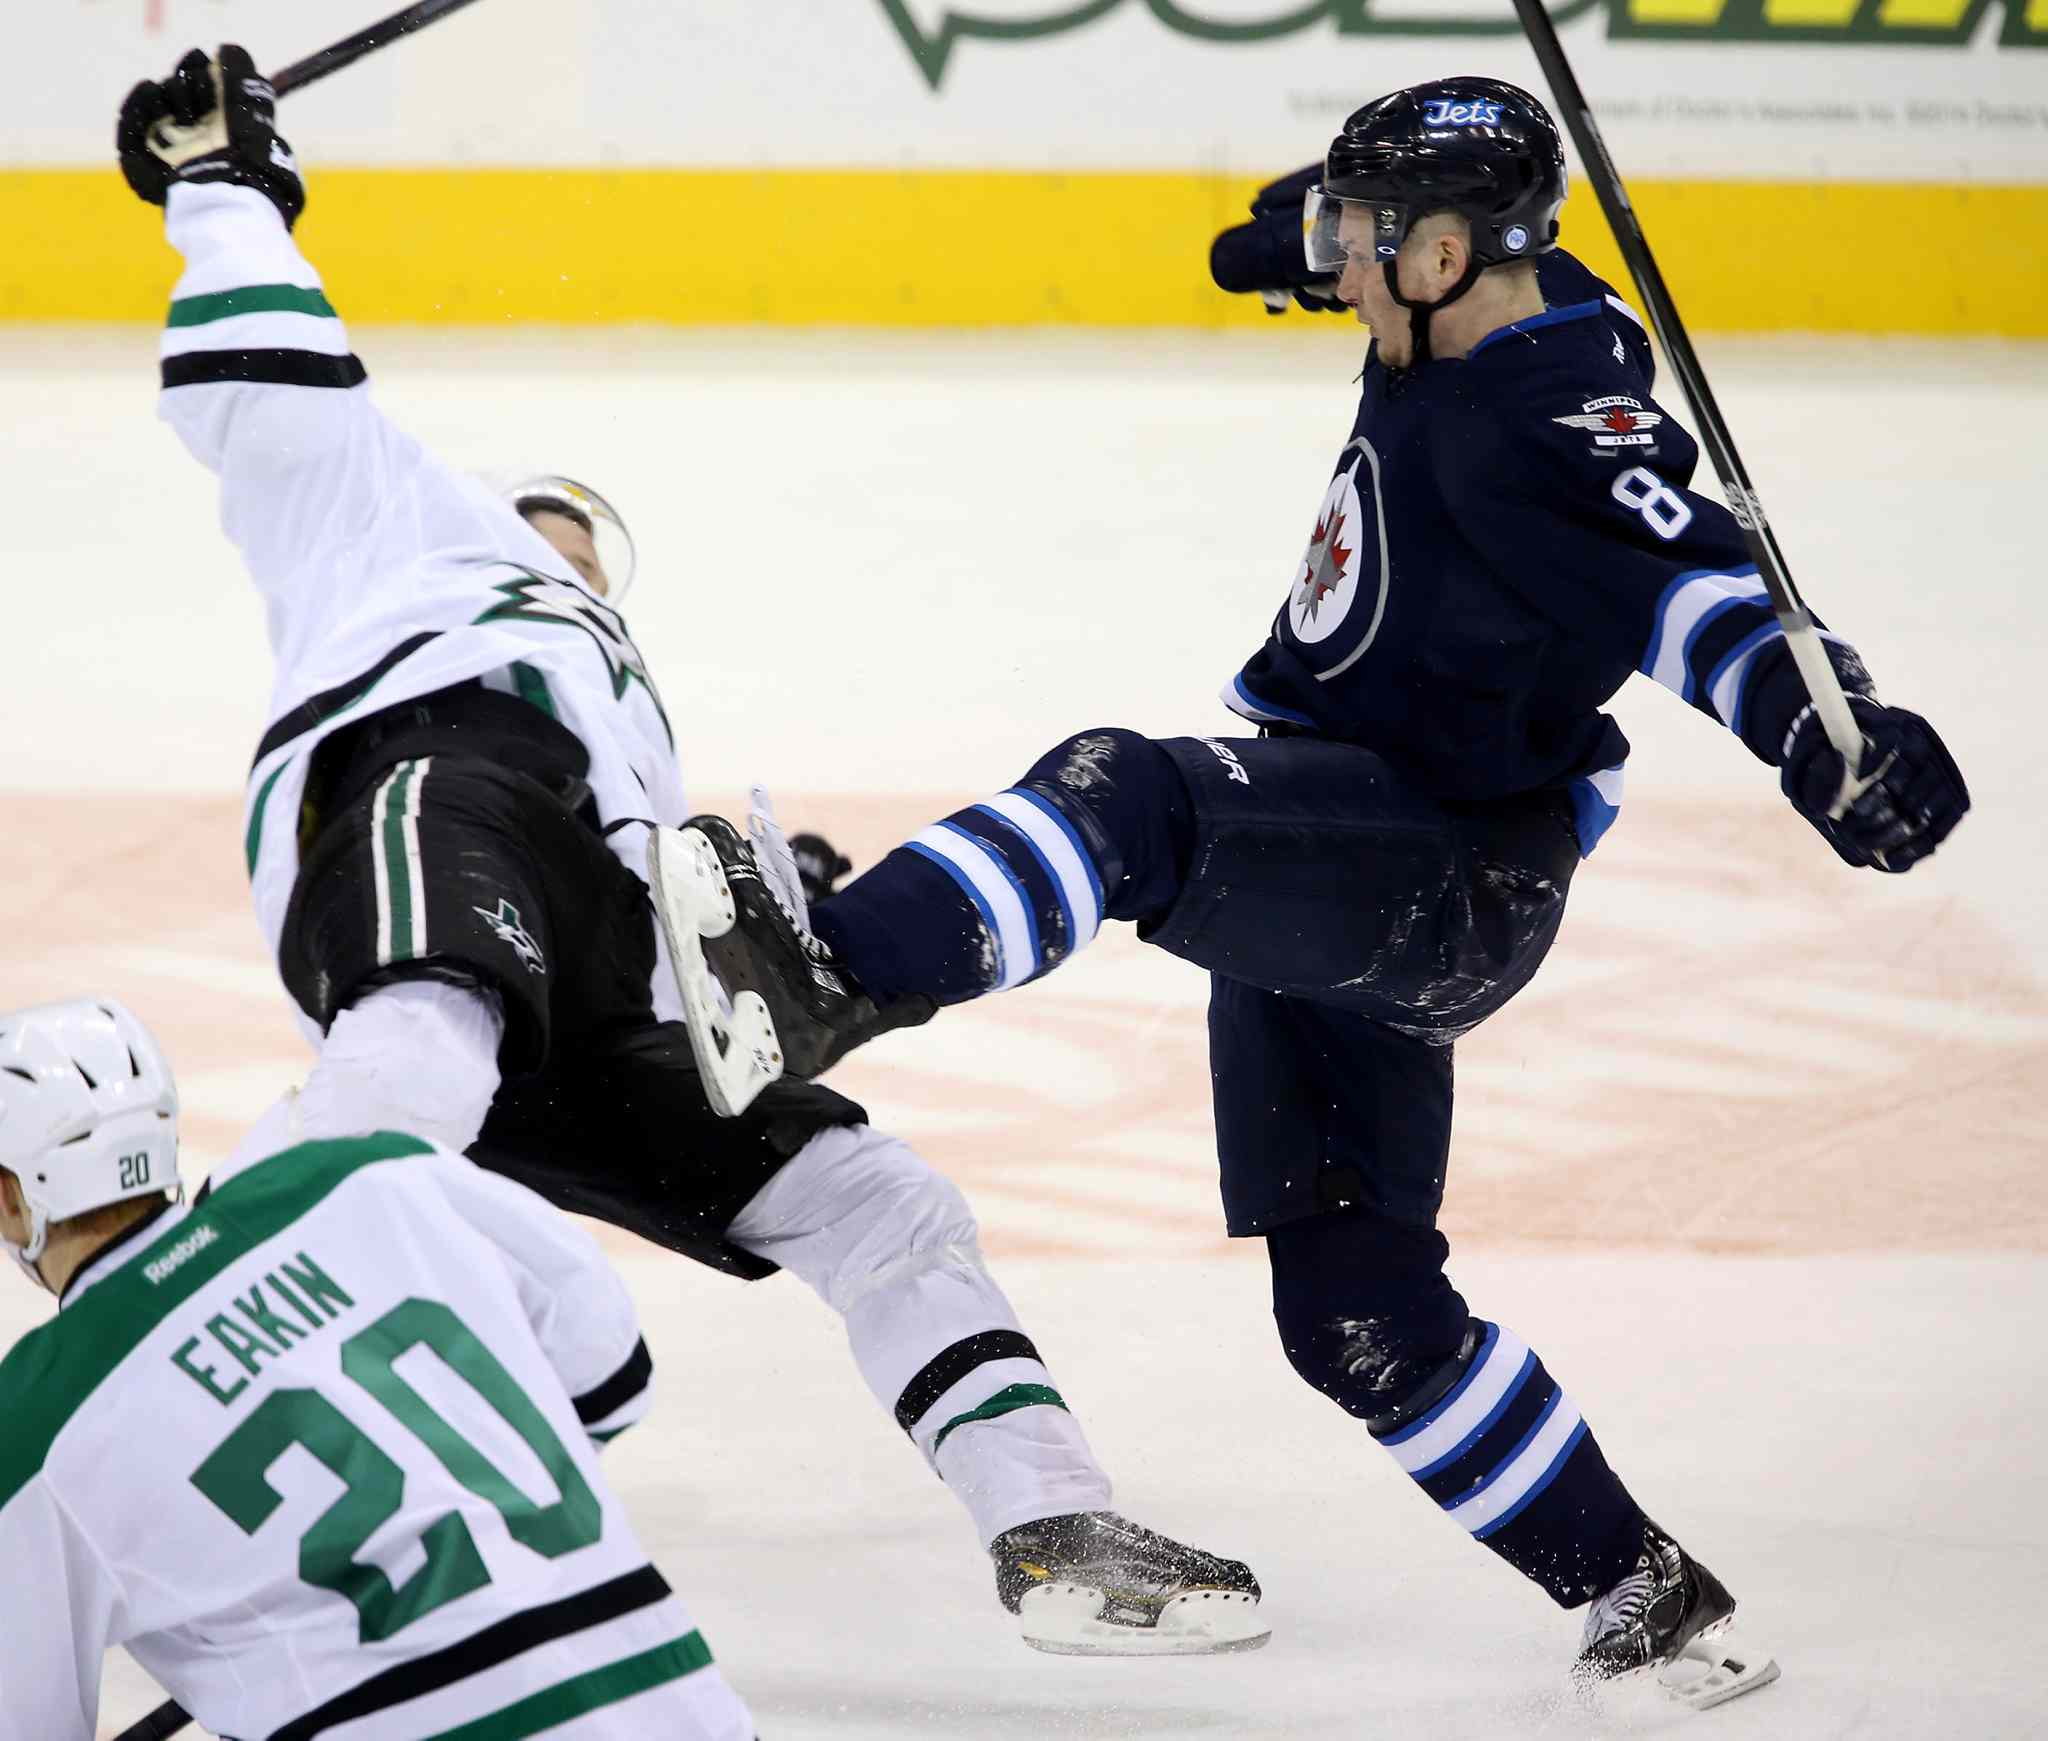 Stars forward Erik Cole is flattened by Jets rookie defenceman Jacob Trouba in the first period.